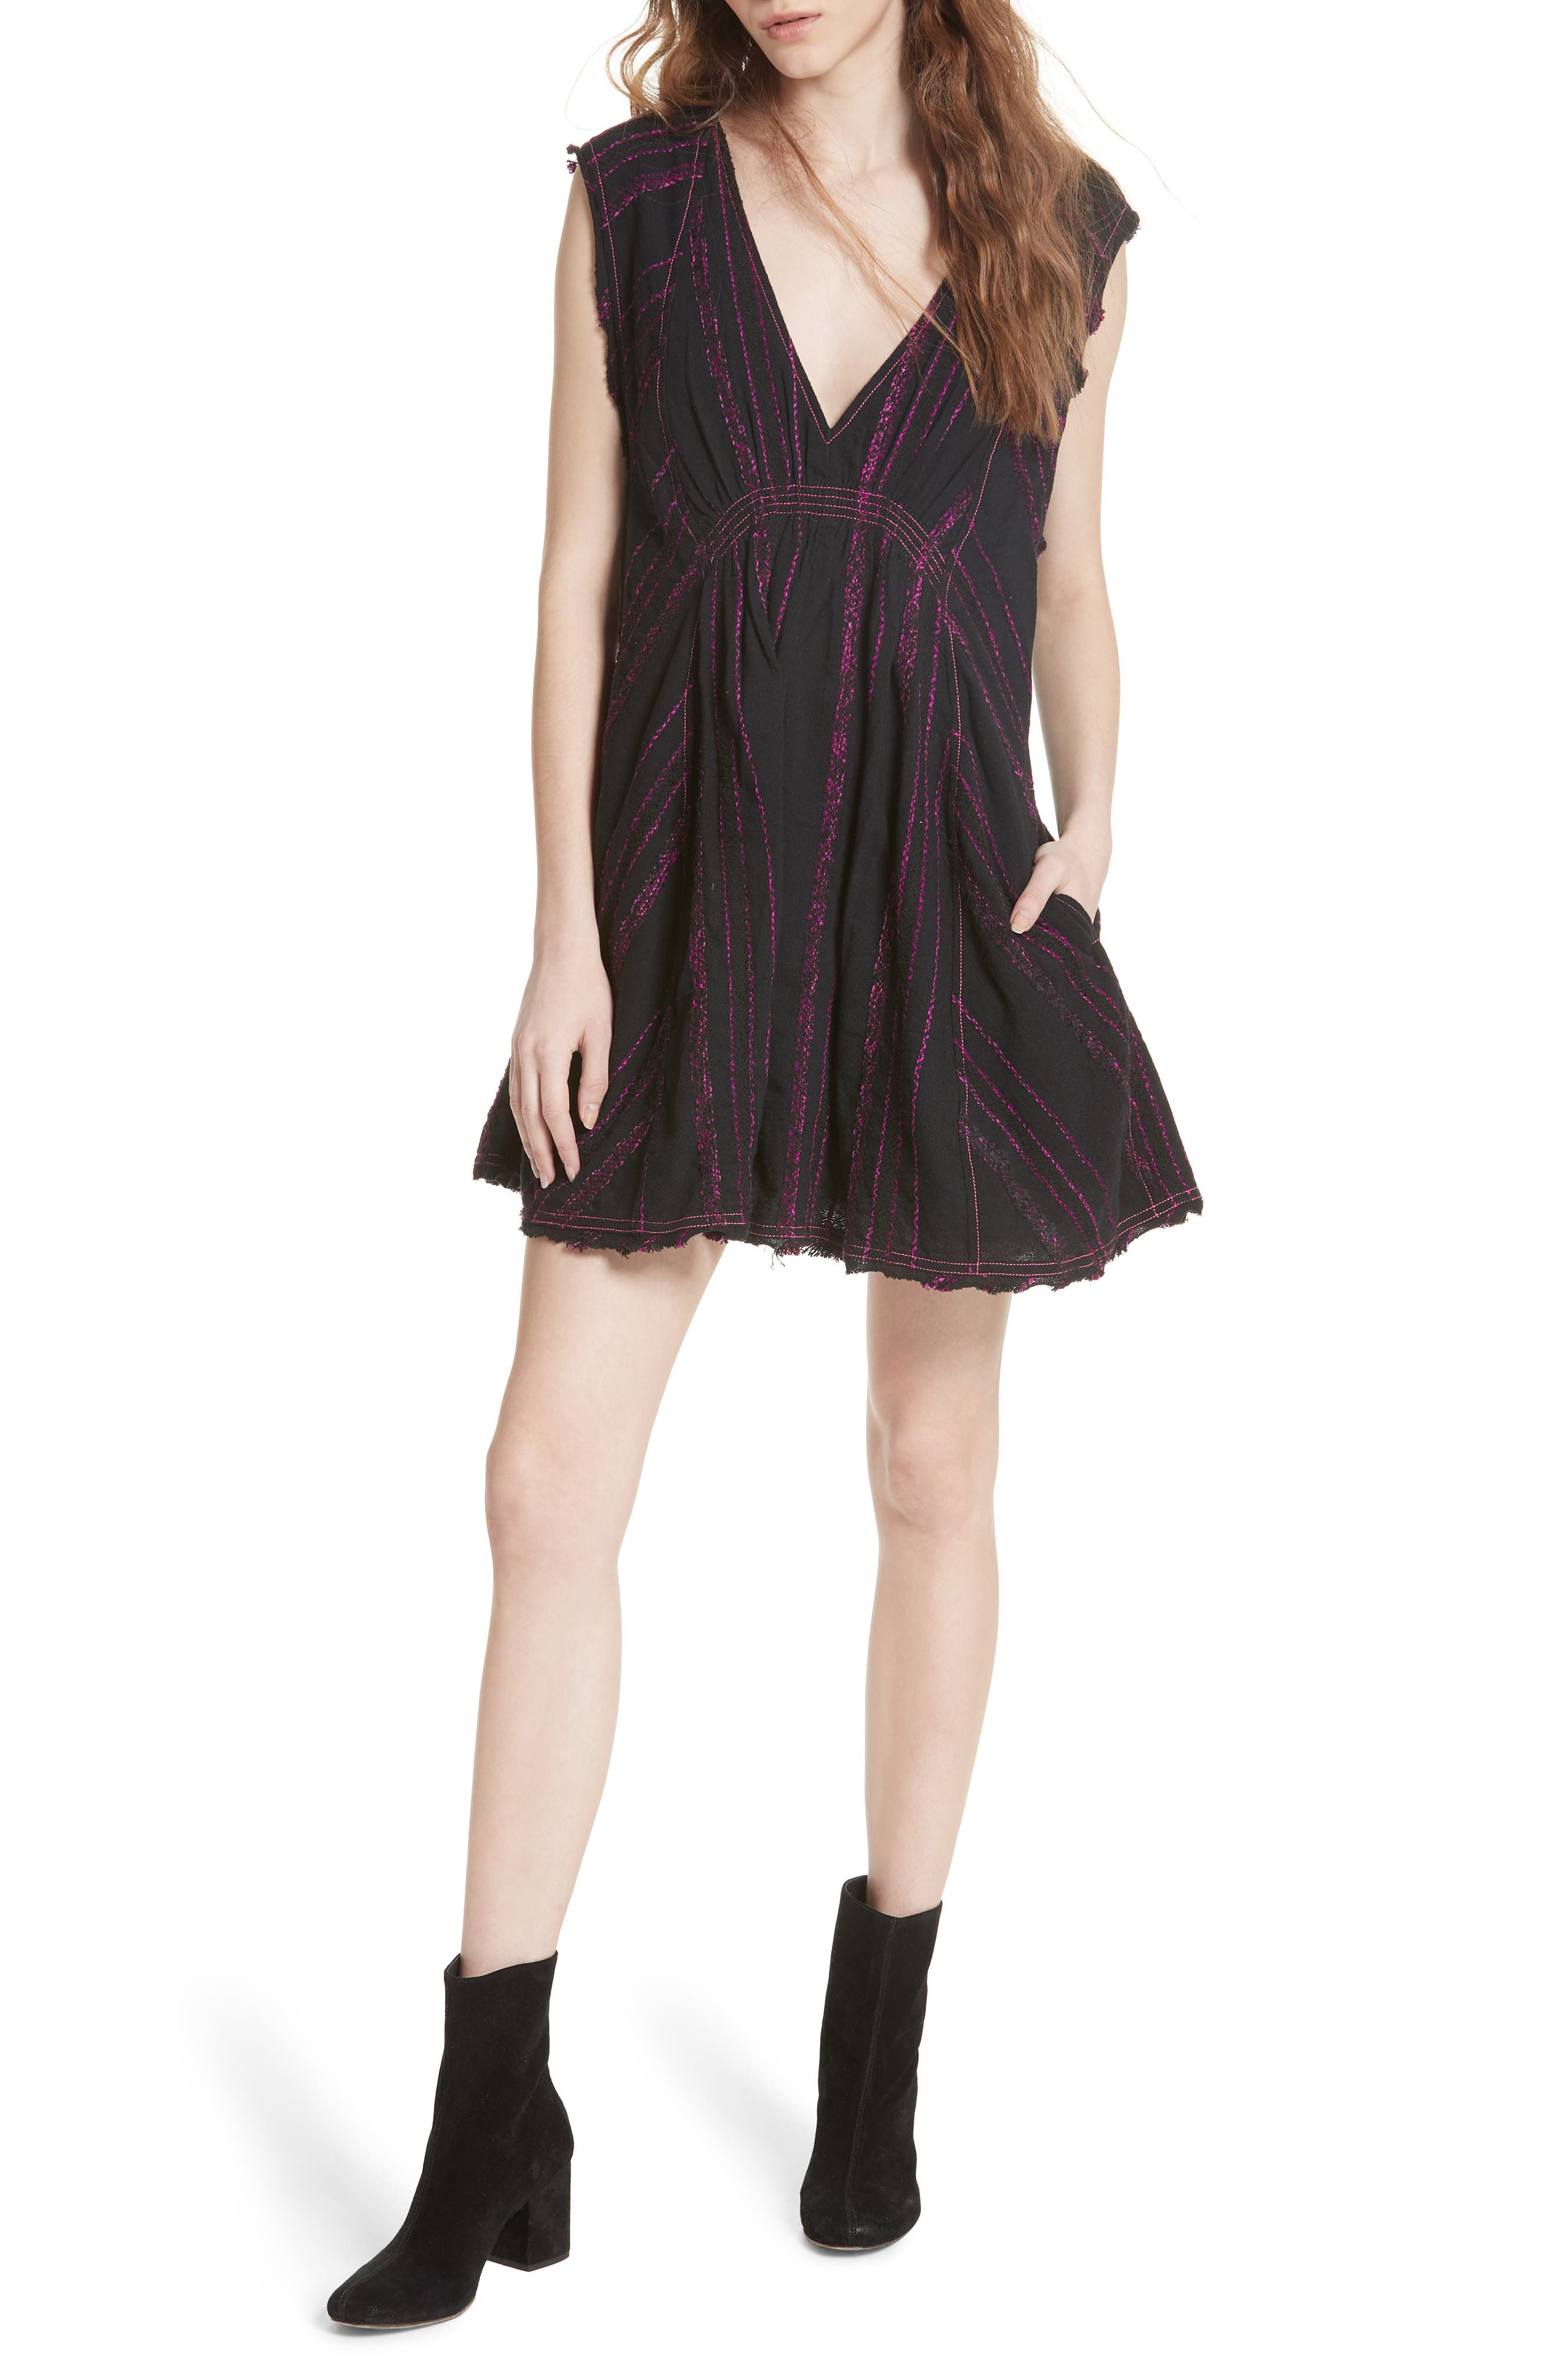 FREE PEOPLE Cactus Flowers Minidress, Main, color, 001